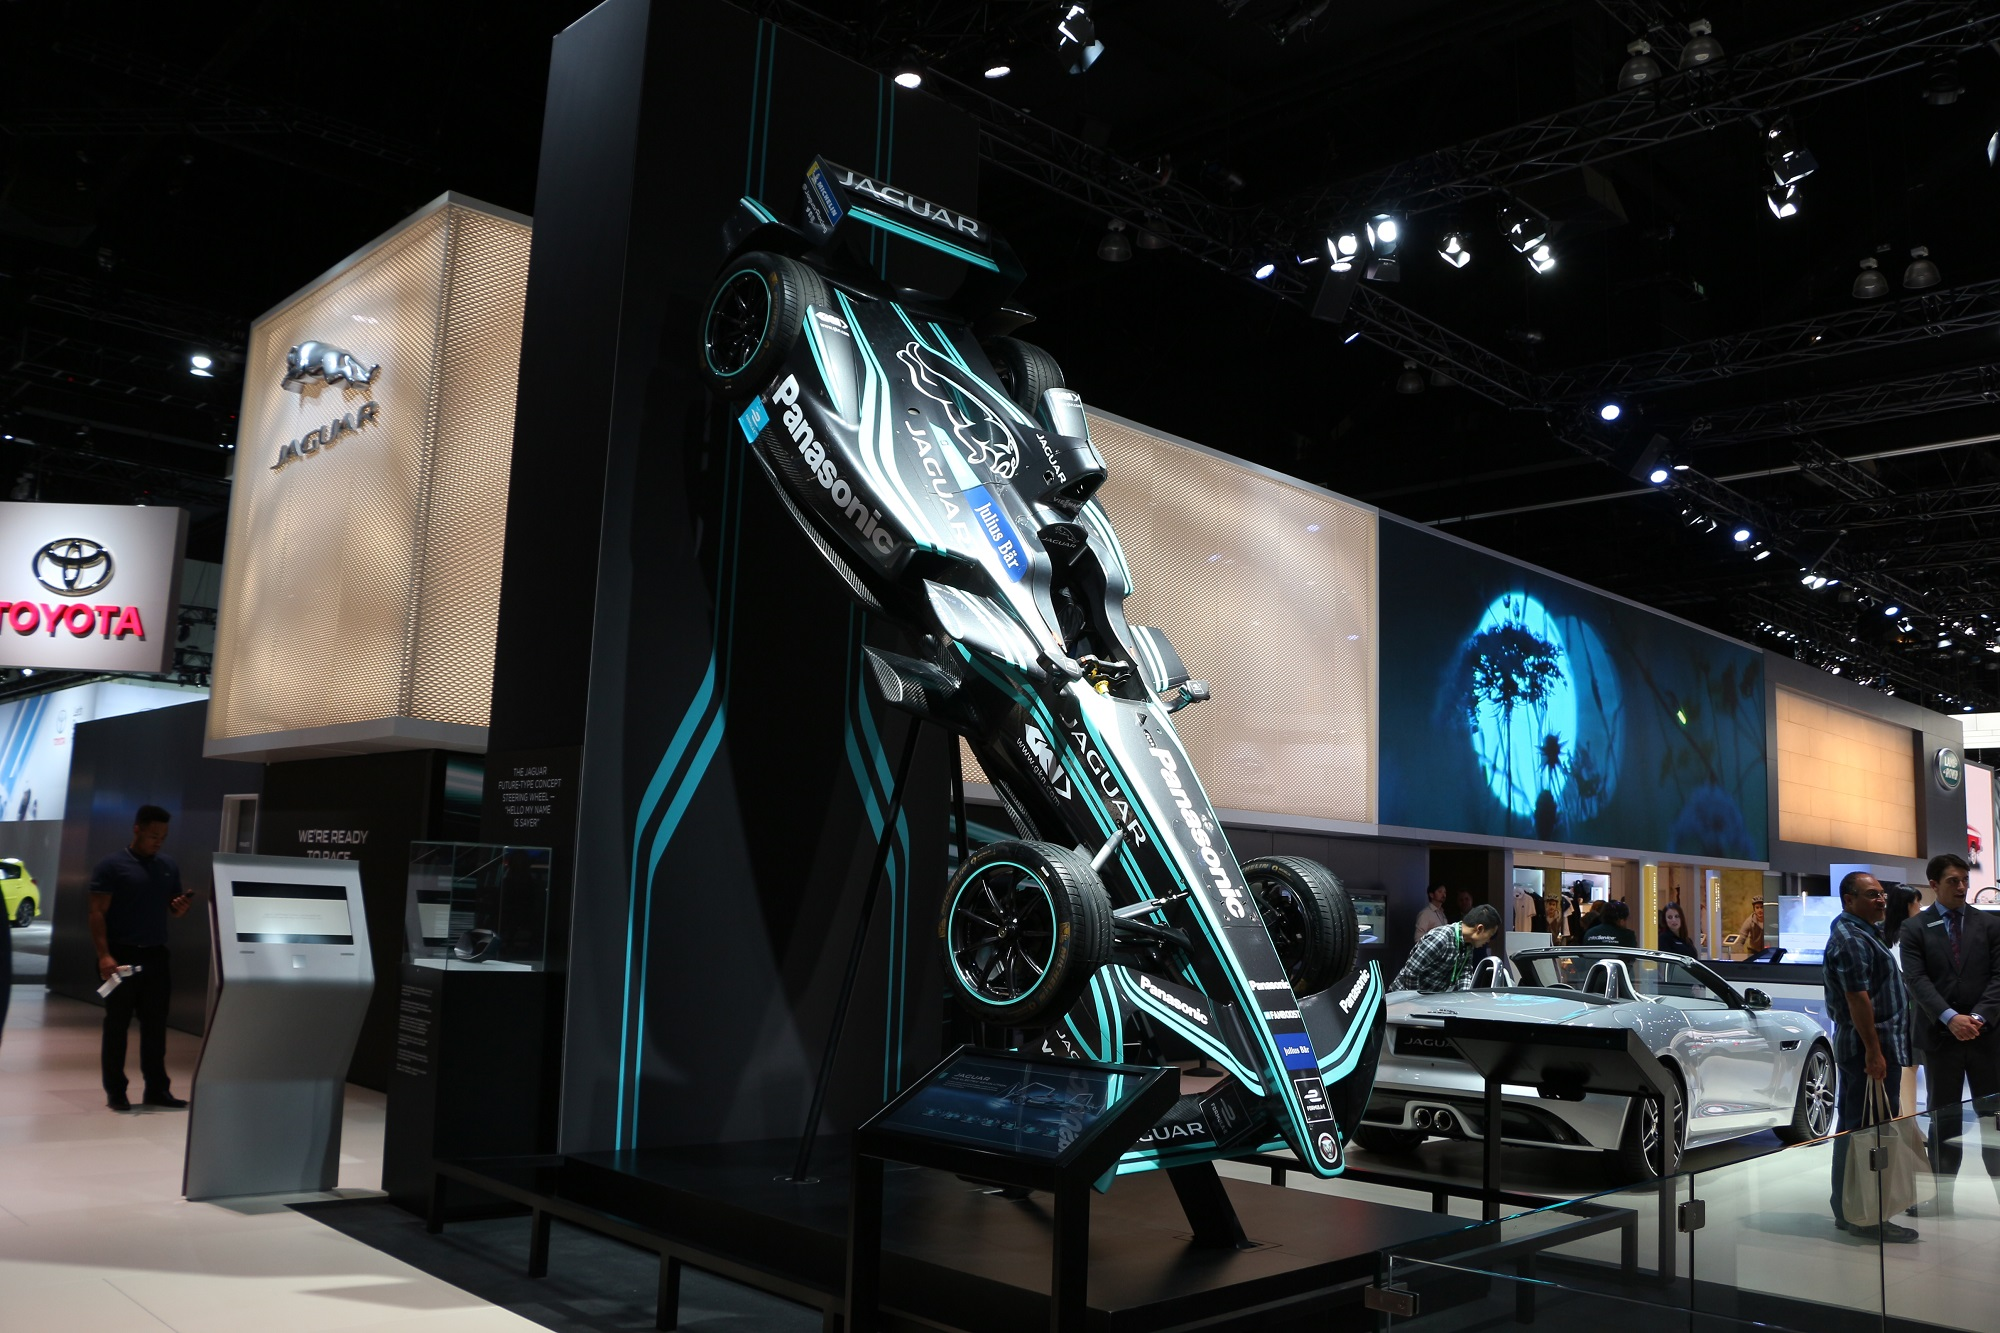 Jaguarforums.com 2018 2017 Jaguar I-PACE EV LA Los Angeles Auto Show Hybrid Electric eTrophy Race Car I-TYPE FIA Formula E